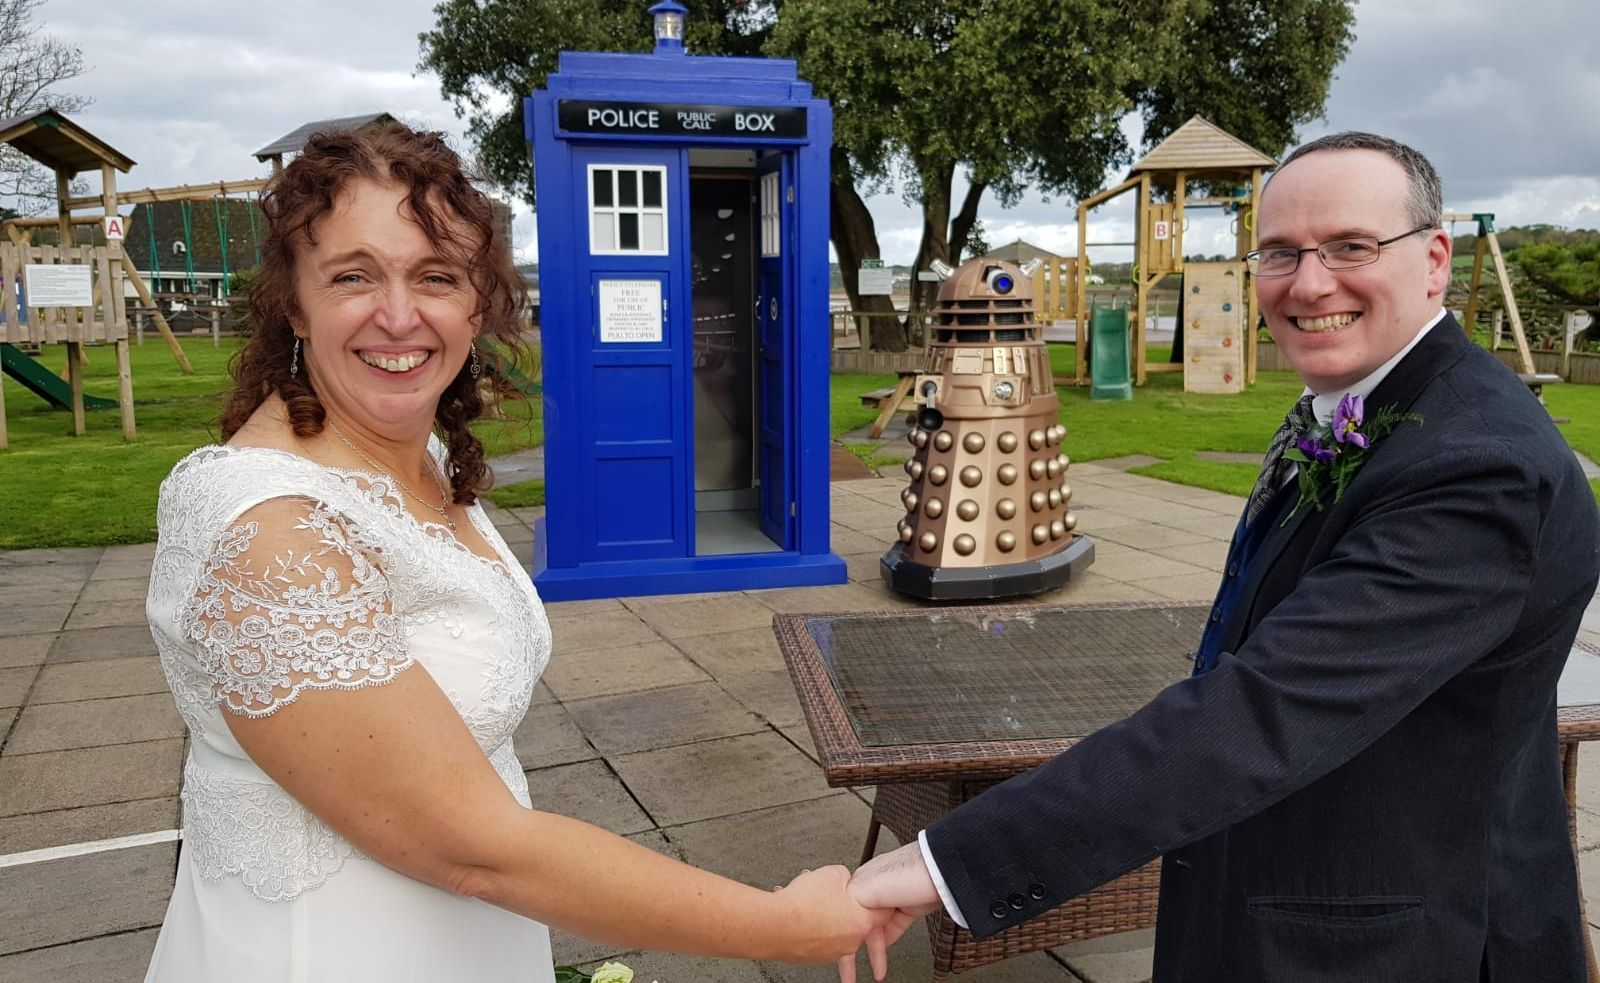 Doctor Who themed wedding in Cornwall, with TARDIS and Dalek